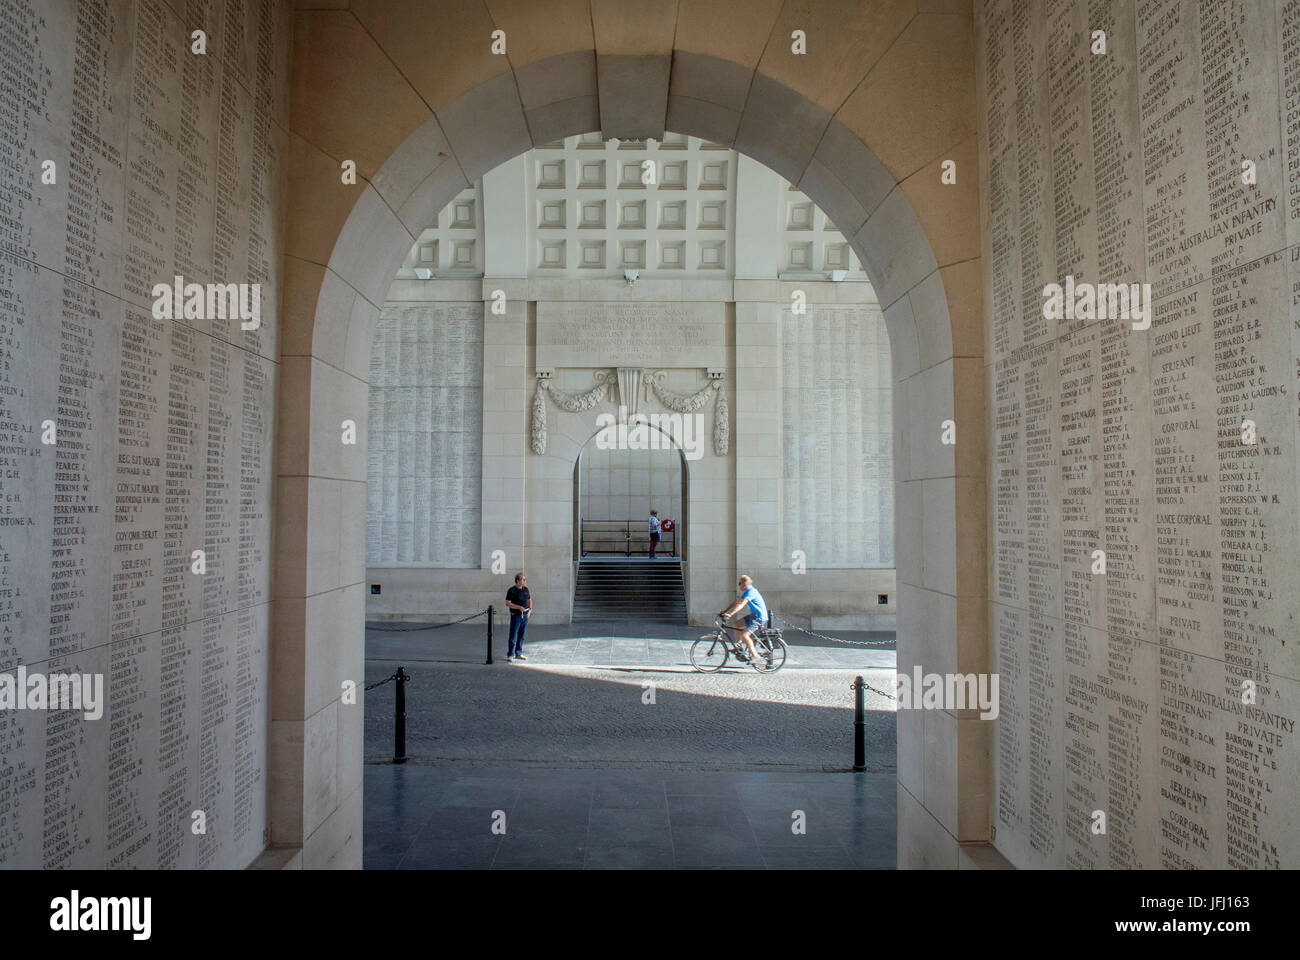 The Menin Gate Memorial to the Missing is a war memorial in Ypres, Belgium, dedicated to the British and Commonwealth Stock Photo